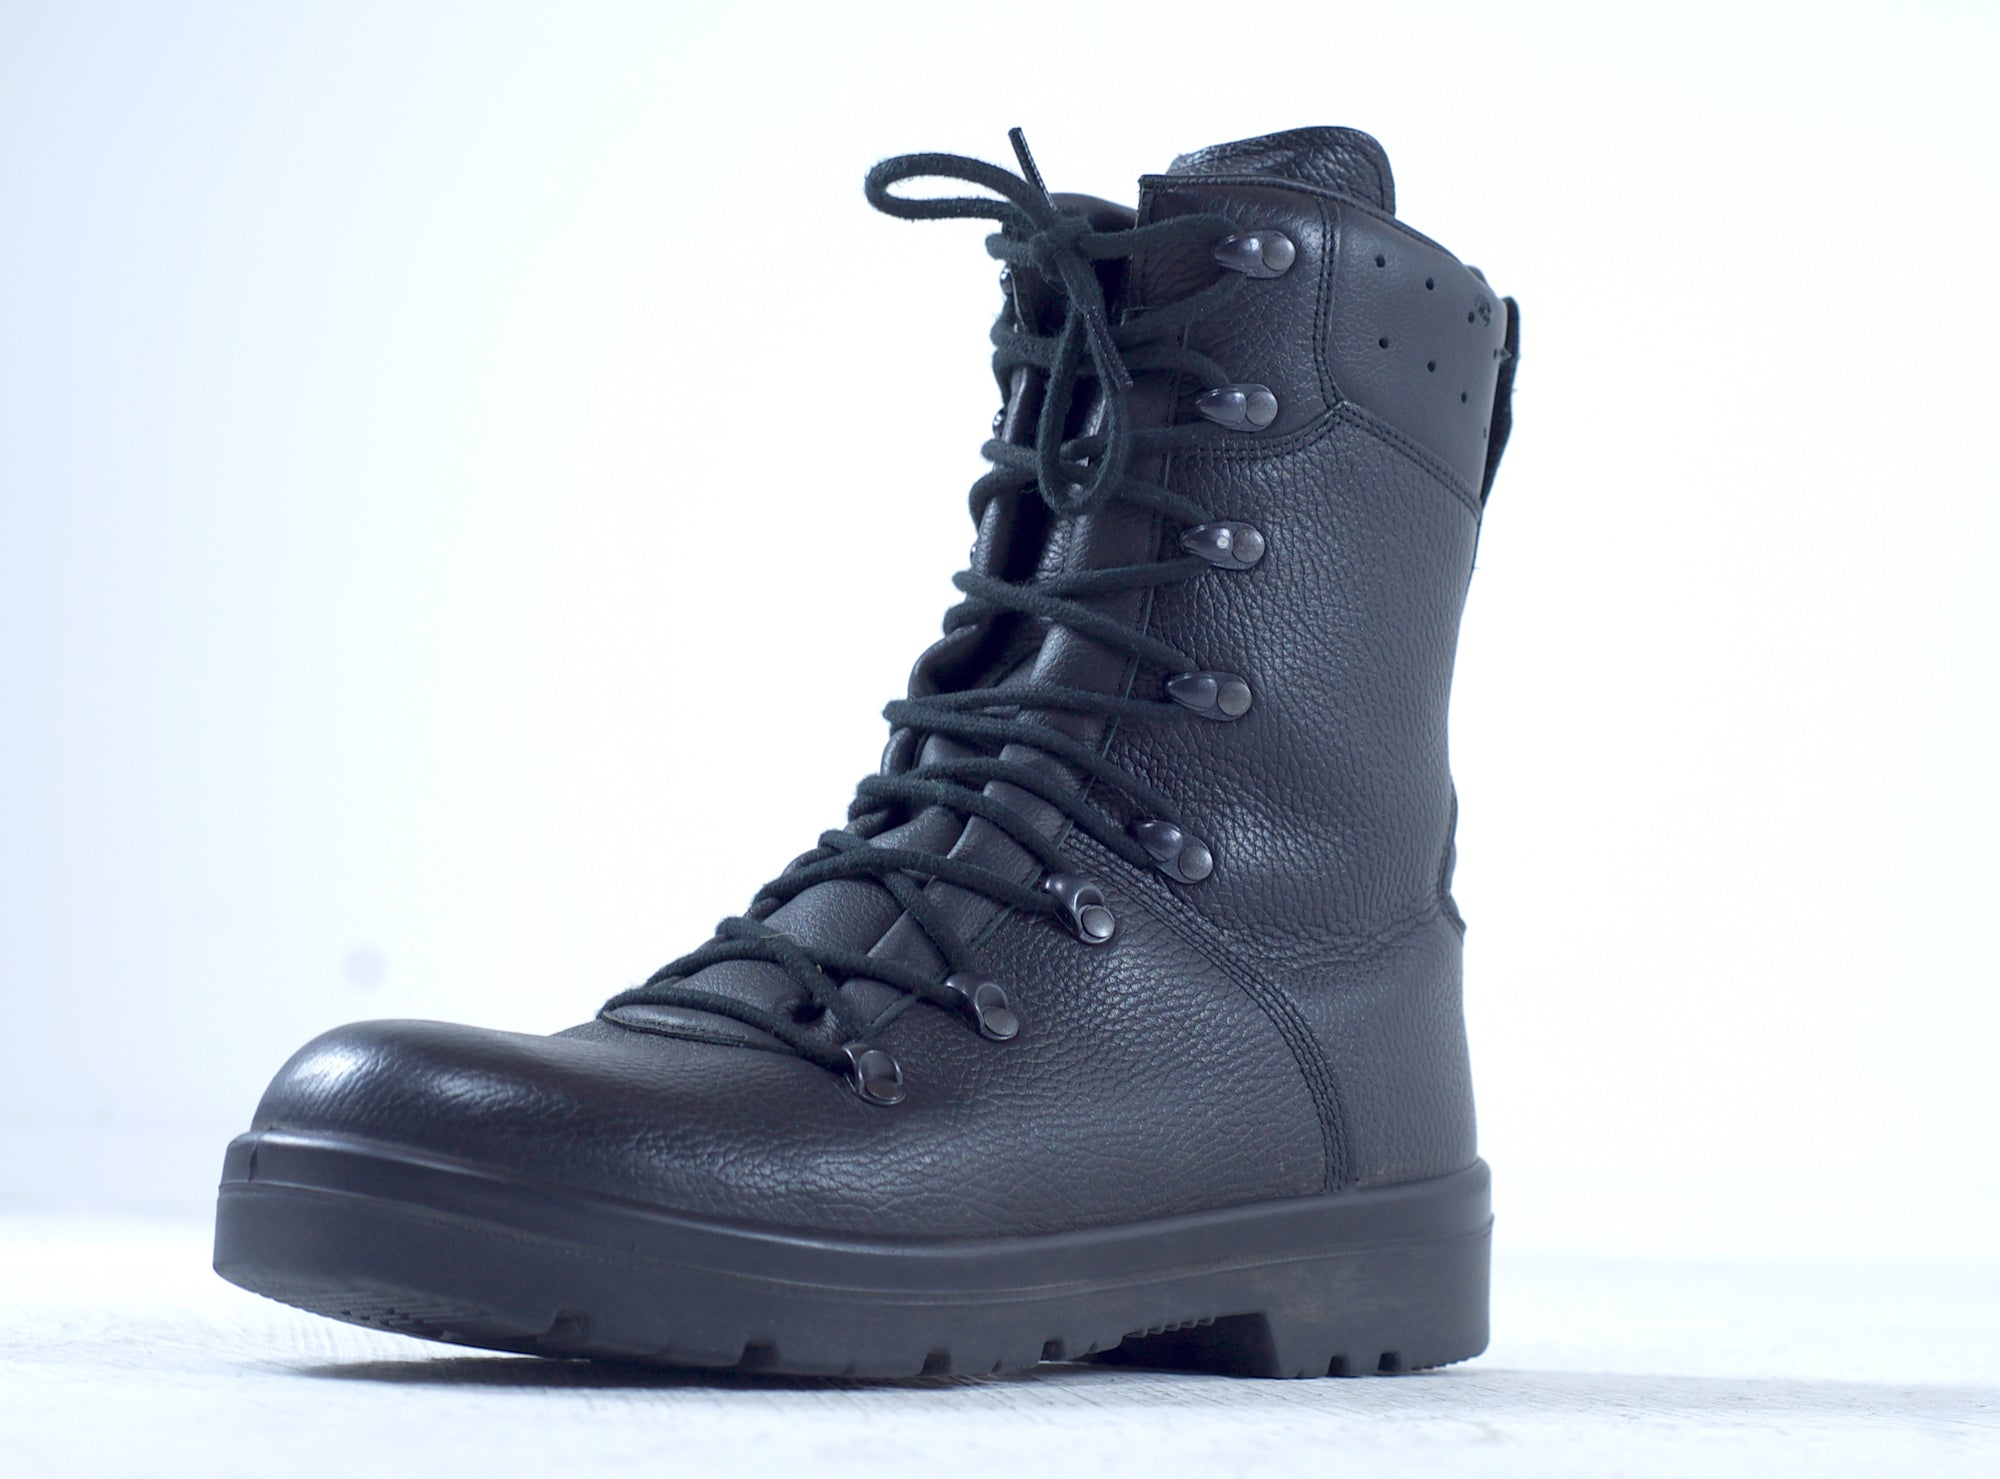 German Combat Para Boots - Current Issue - Grade 1